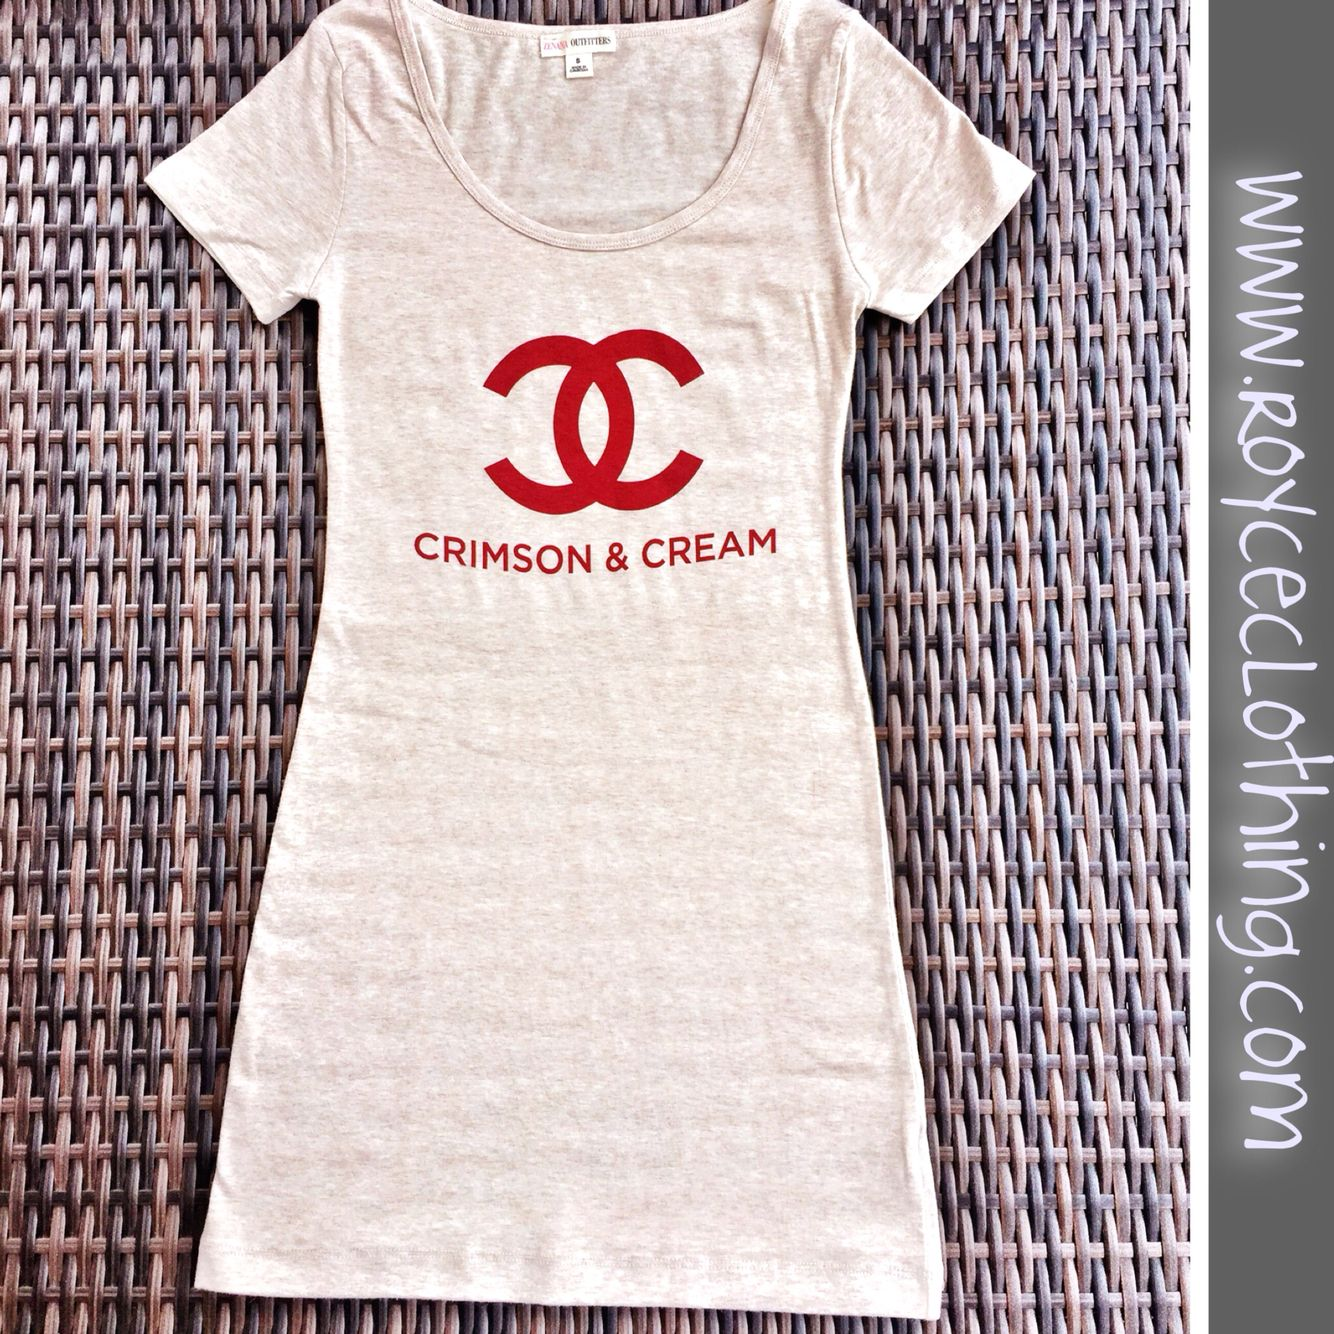 Crimson Cream Chanel T Shirt Dress Triblend S M L Www Royceclothing 30 Free Shipping